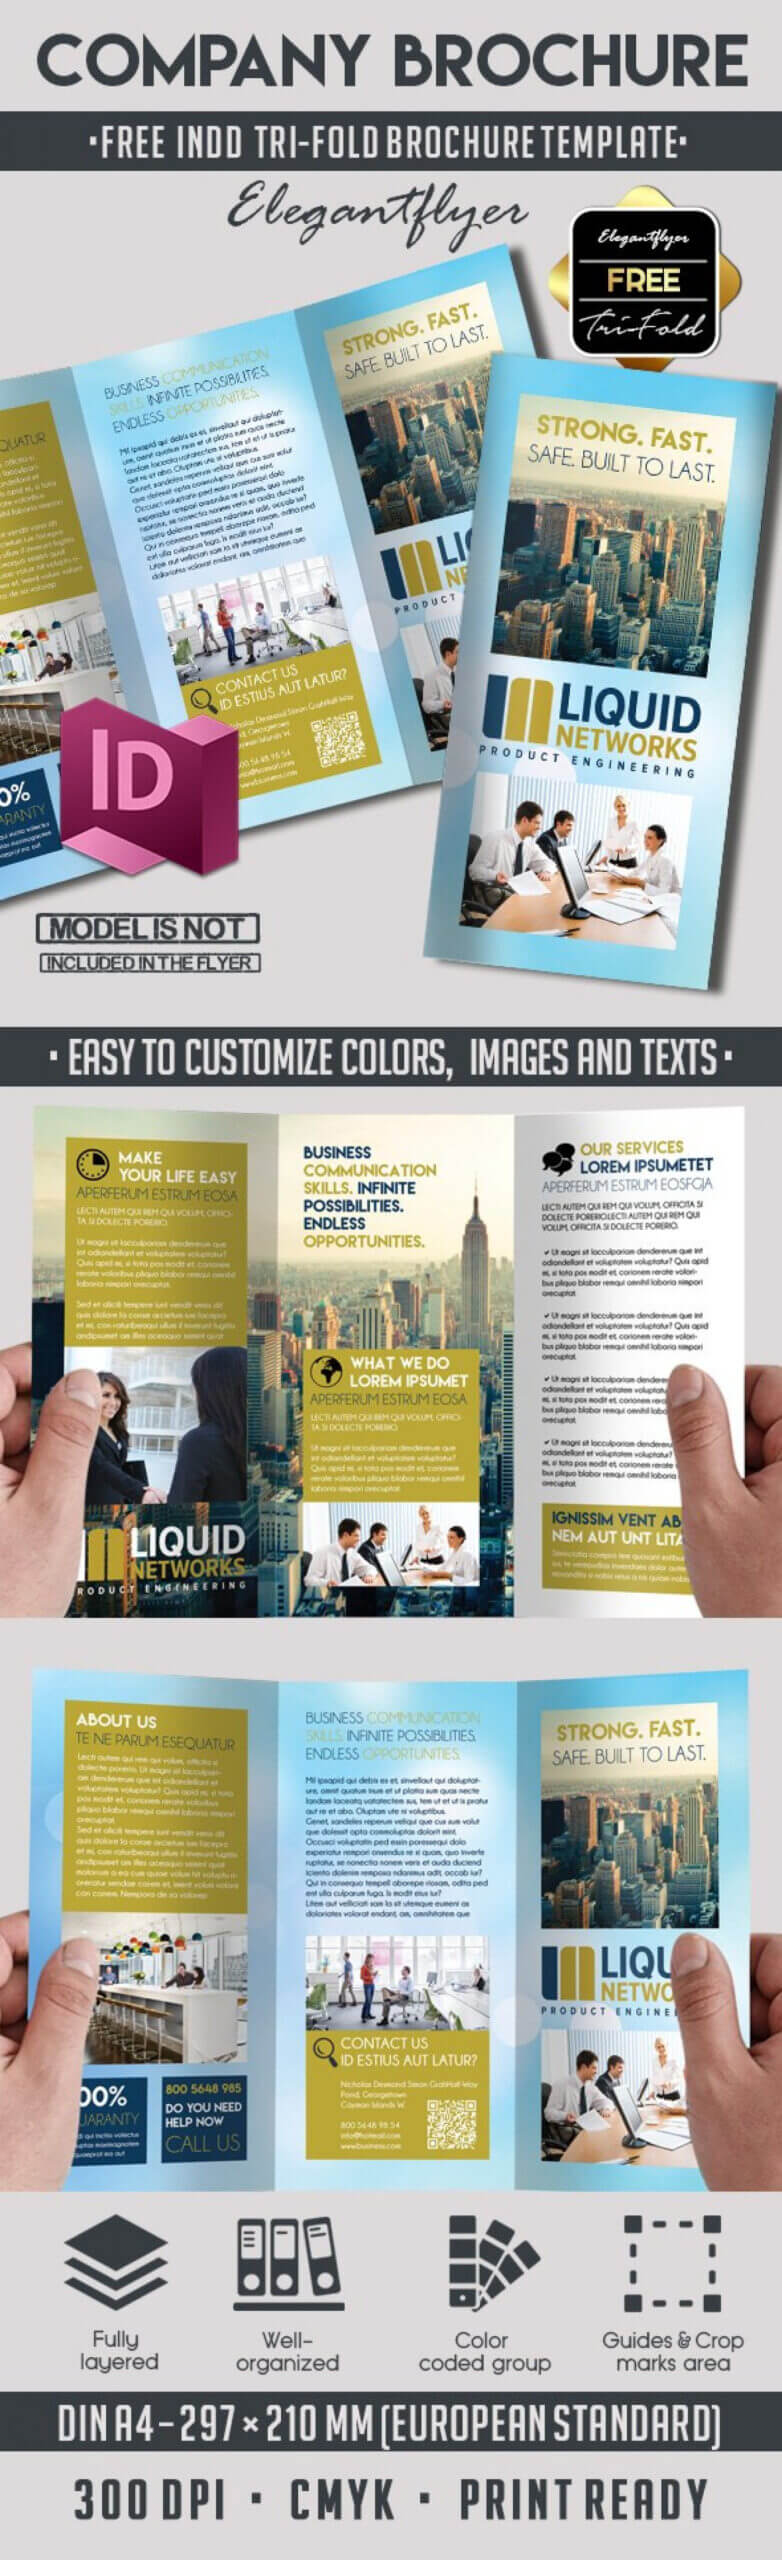 002 Adobe Indesign Tri Fold Brochure Template Real Estate With Regard To Adobe Indesign Tri Fold Brochure Template